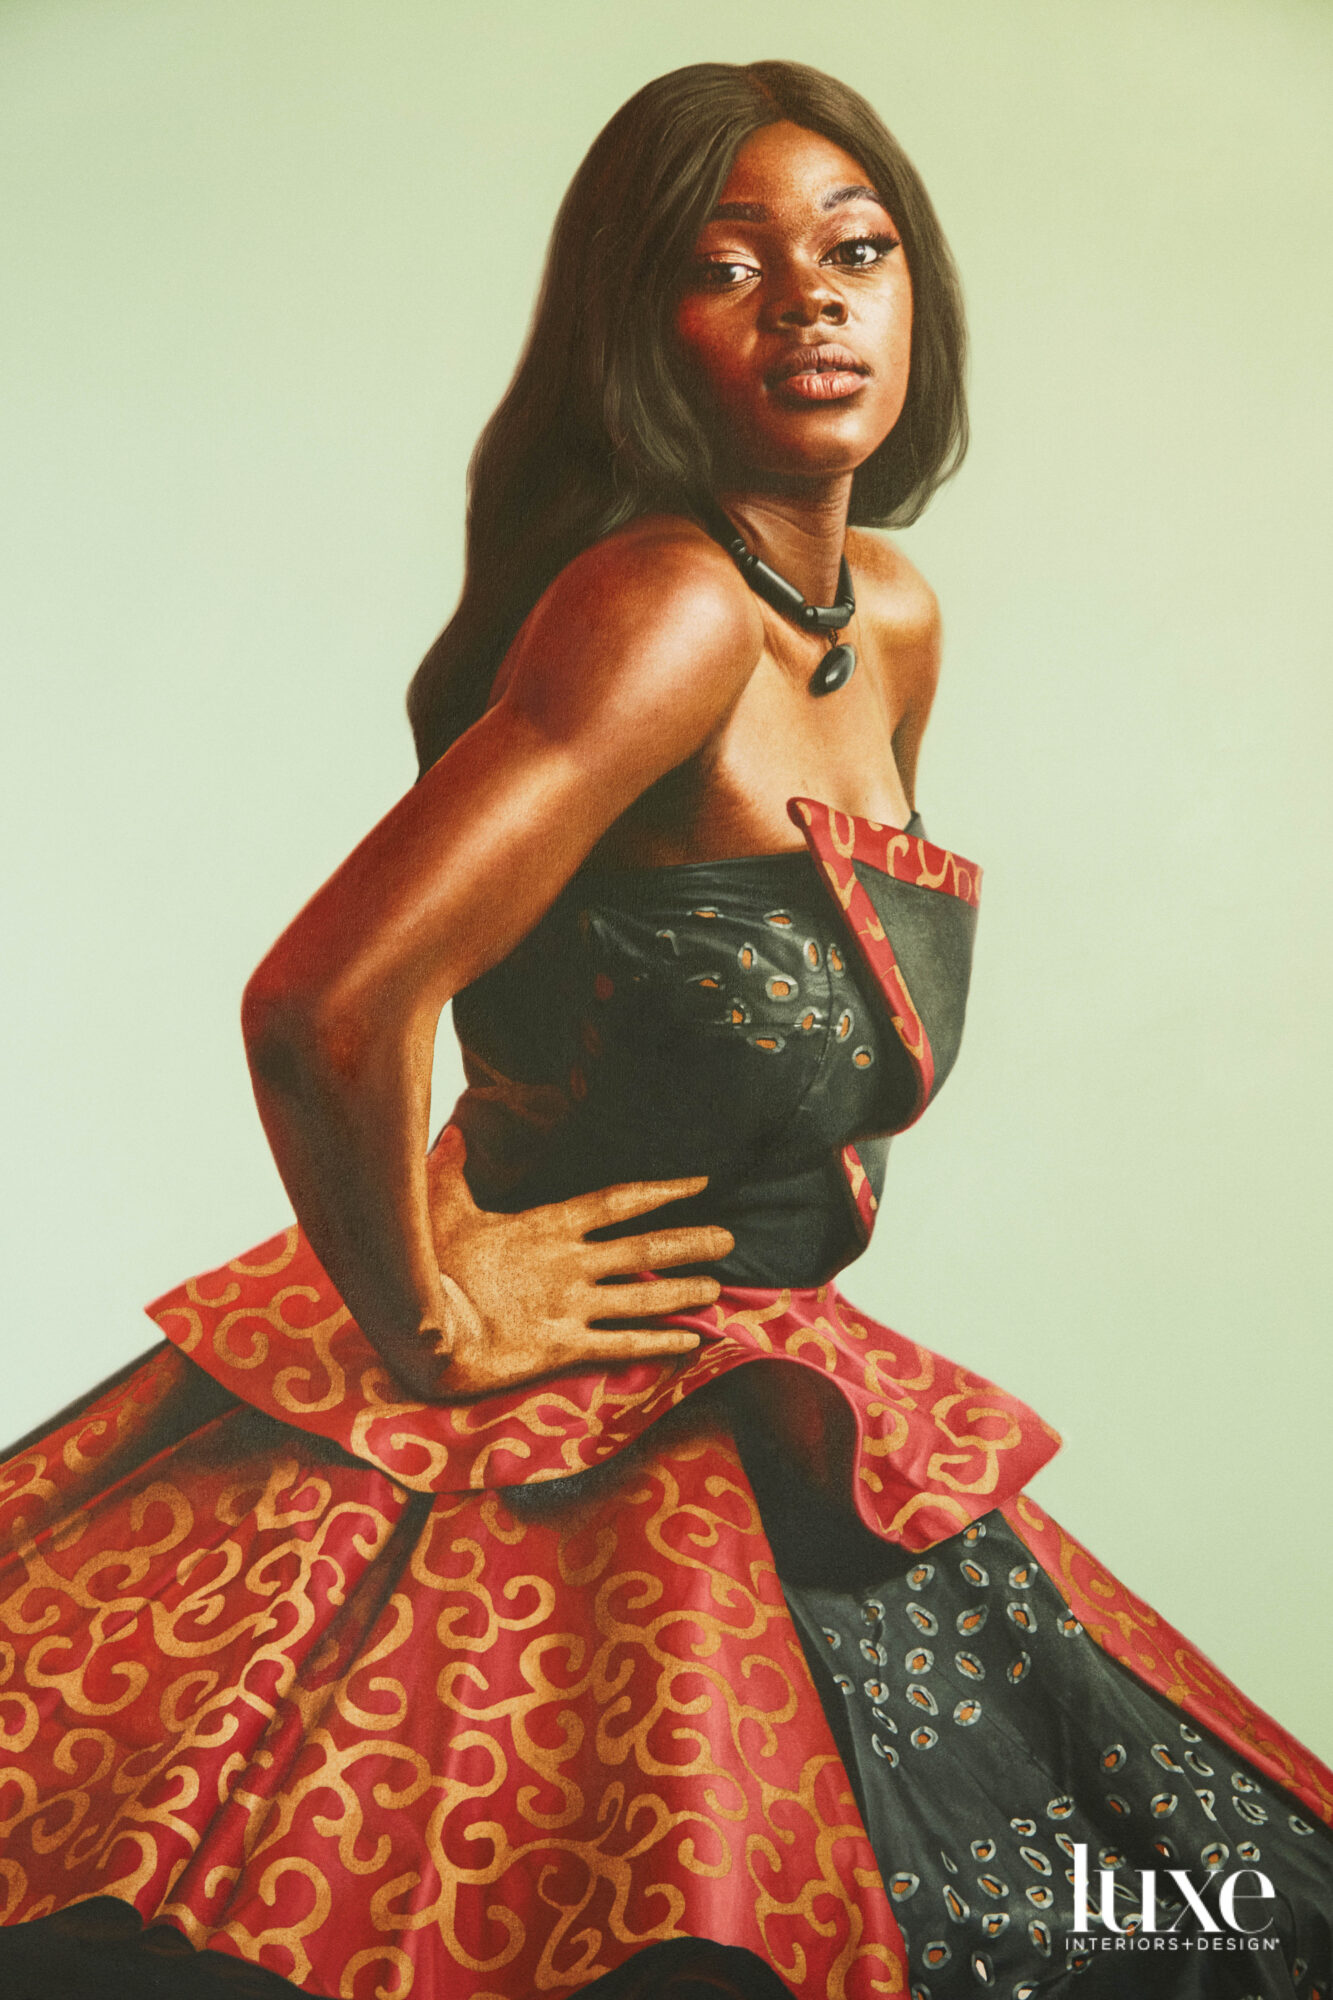 A Black woman with long hair in a black-and-red strapless dress